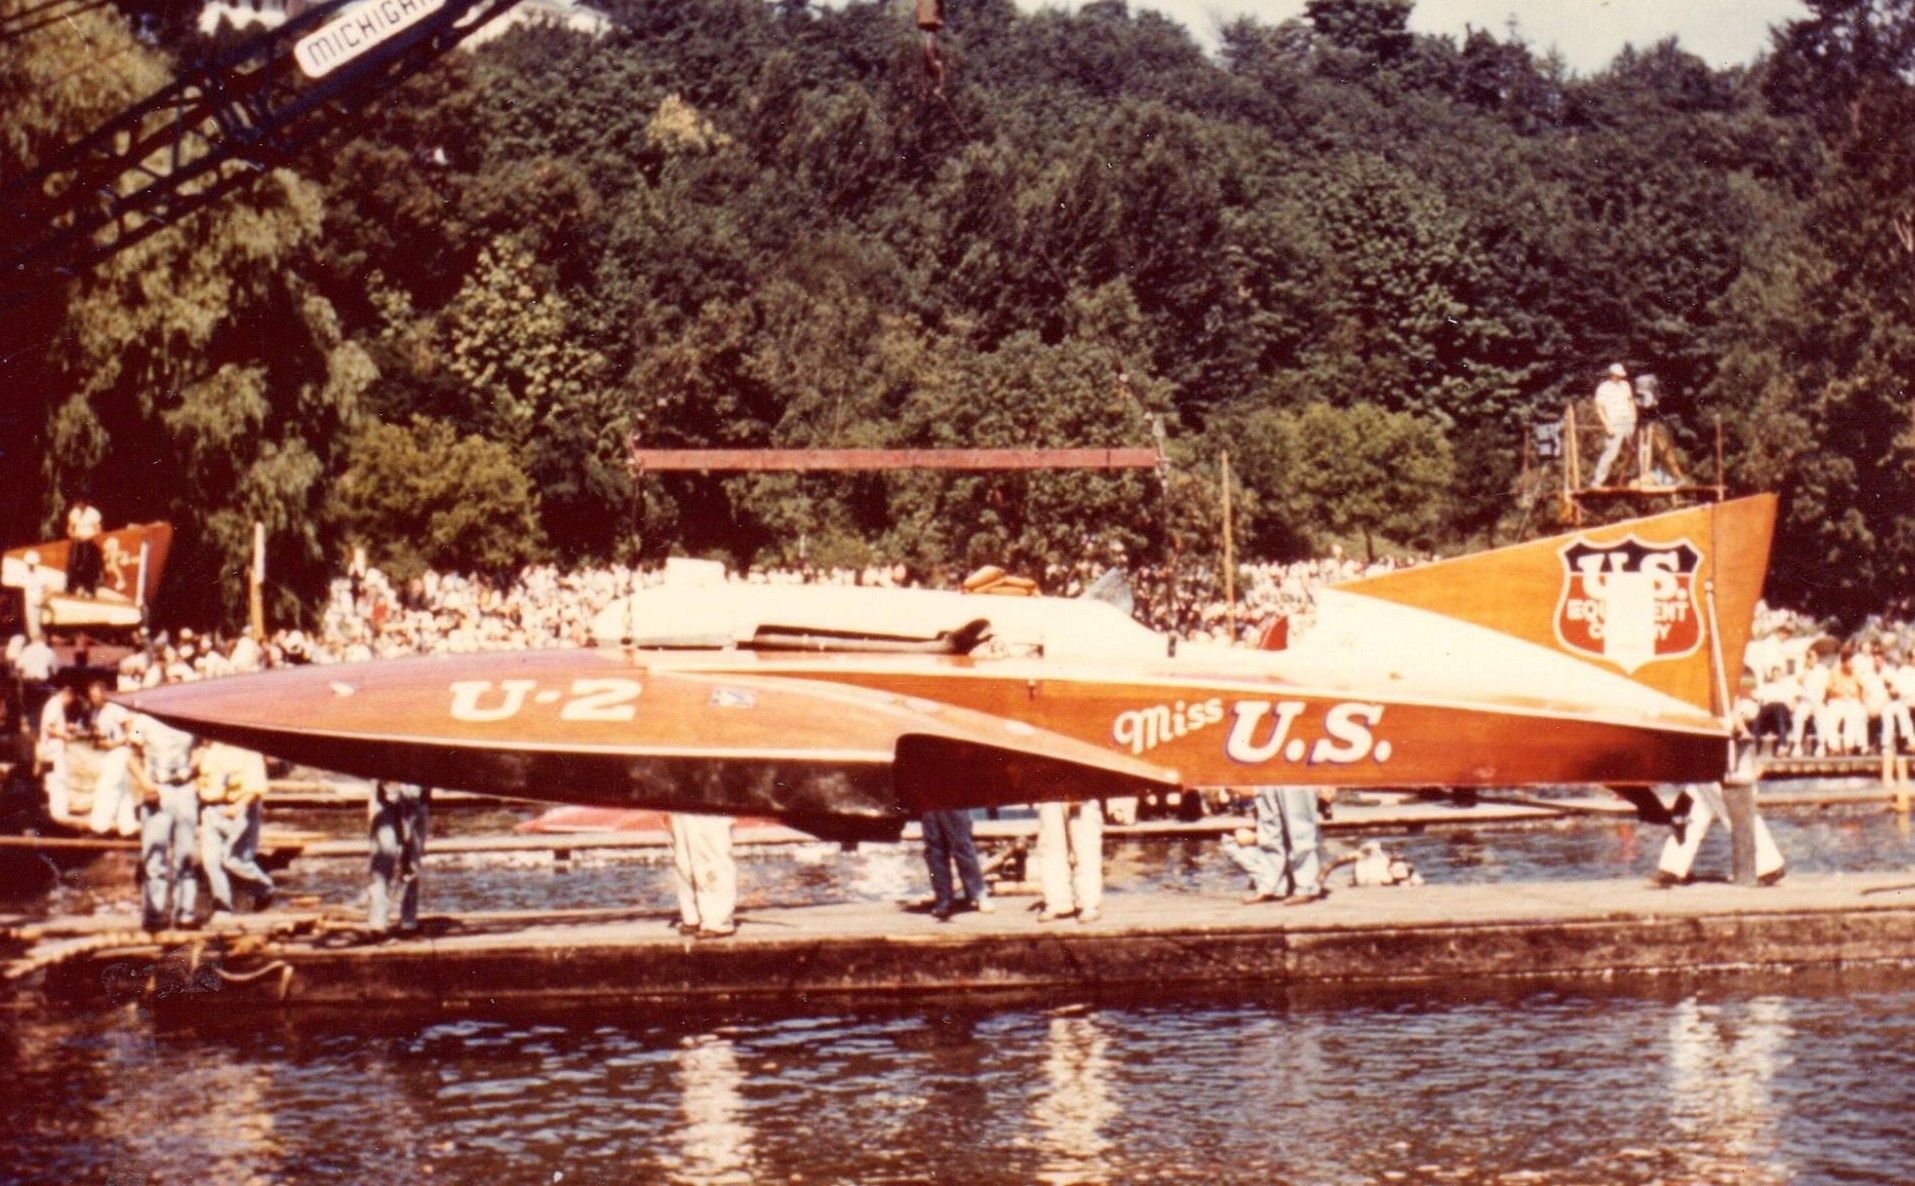 Pin by Dan Anderson on Hydroplanes hanging around